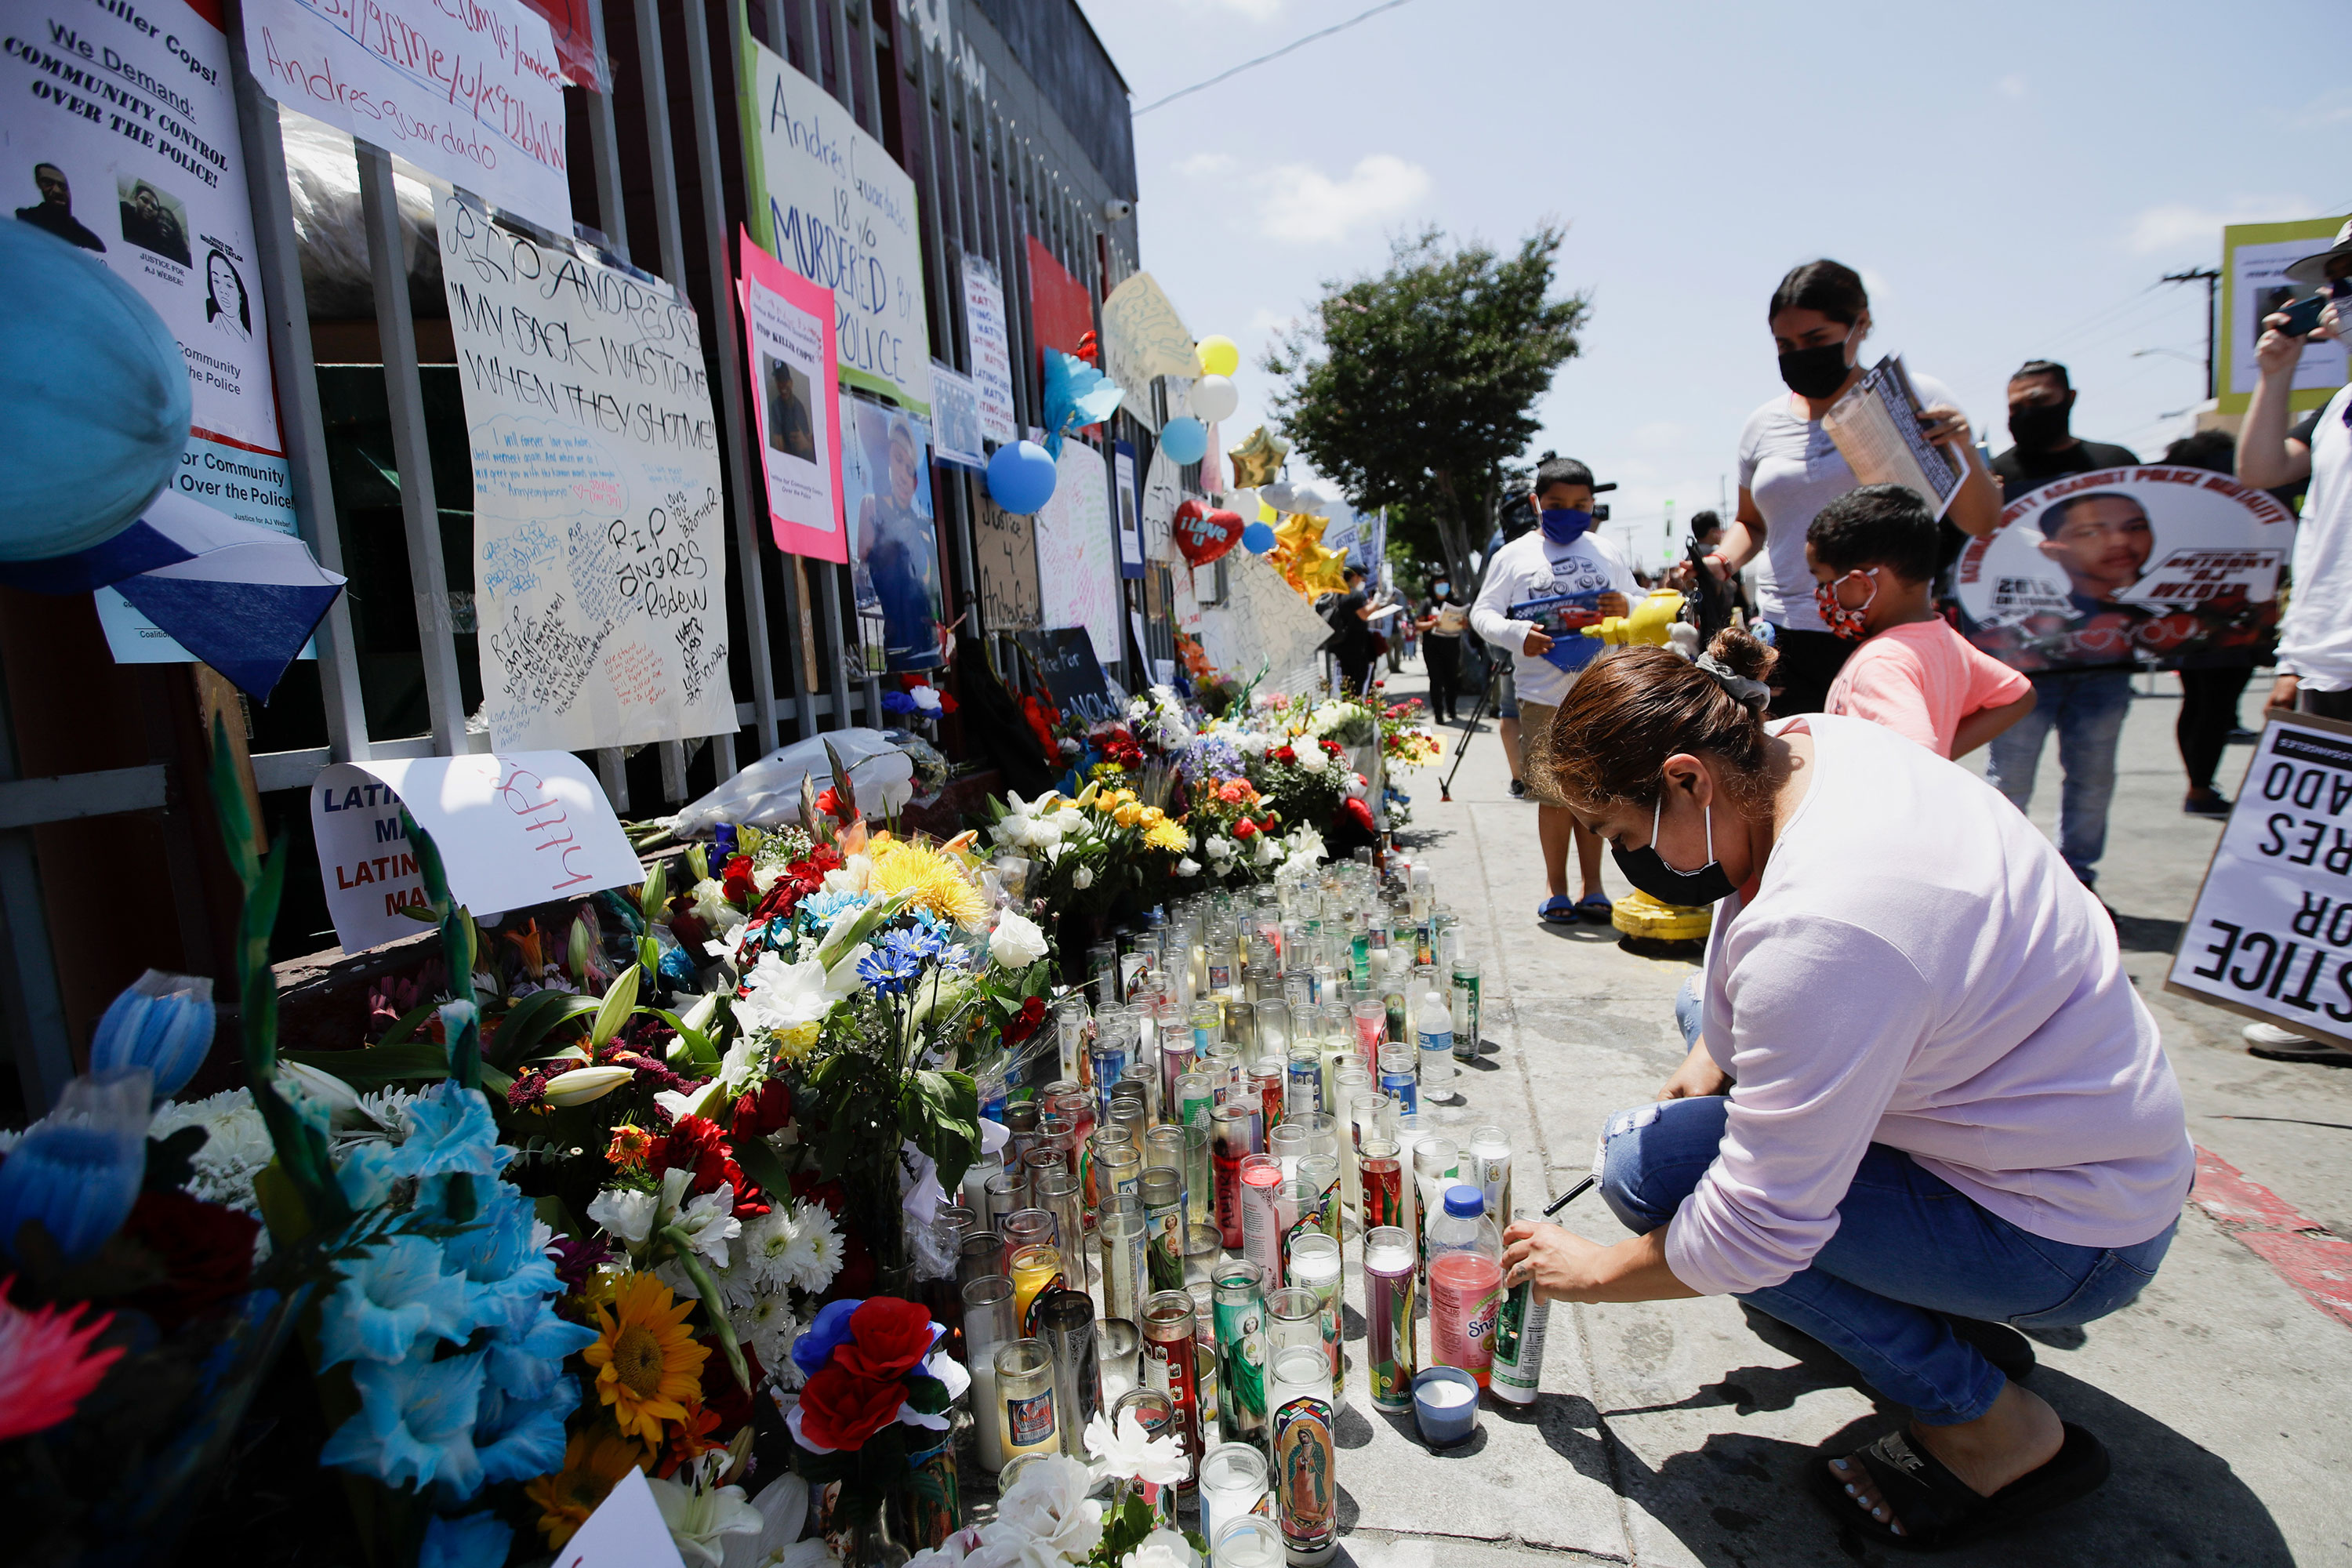 People leave candles and other items at a makeshift memorial for Andres Guardado on June 21 in Gardena, California.